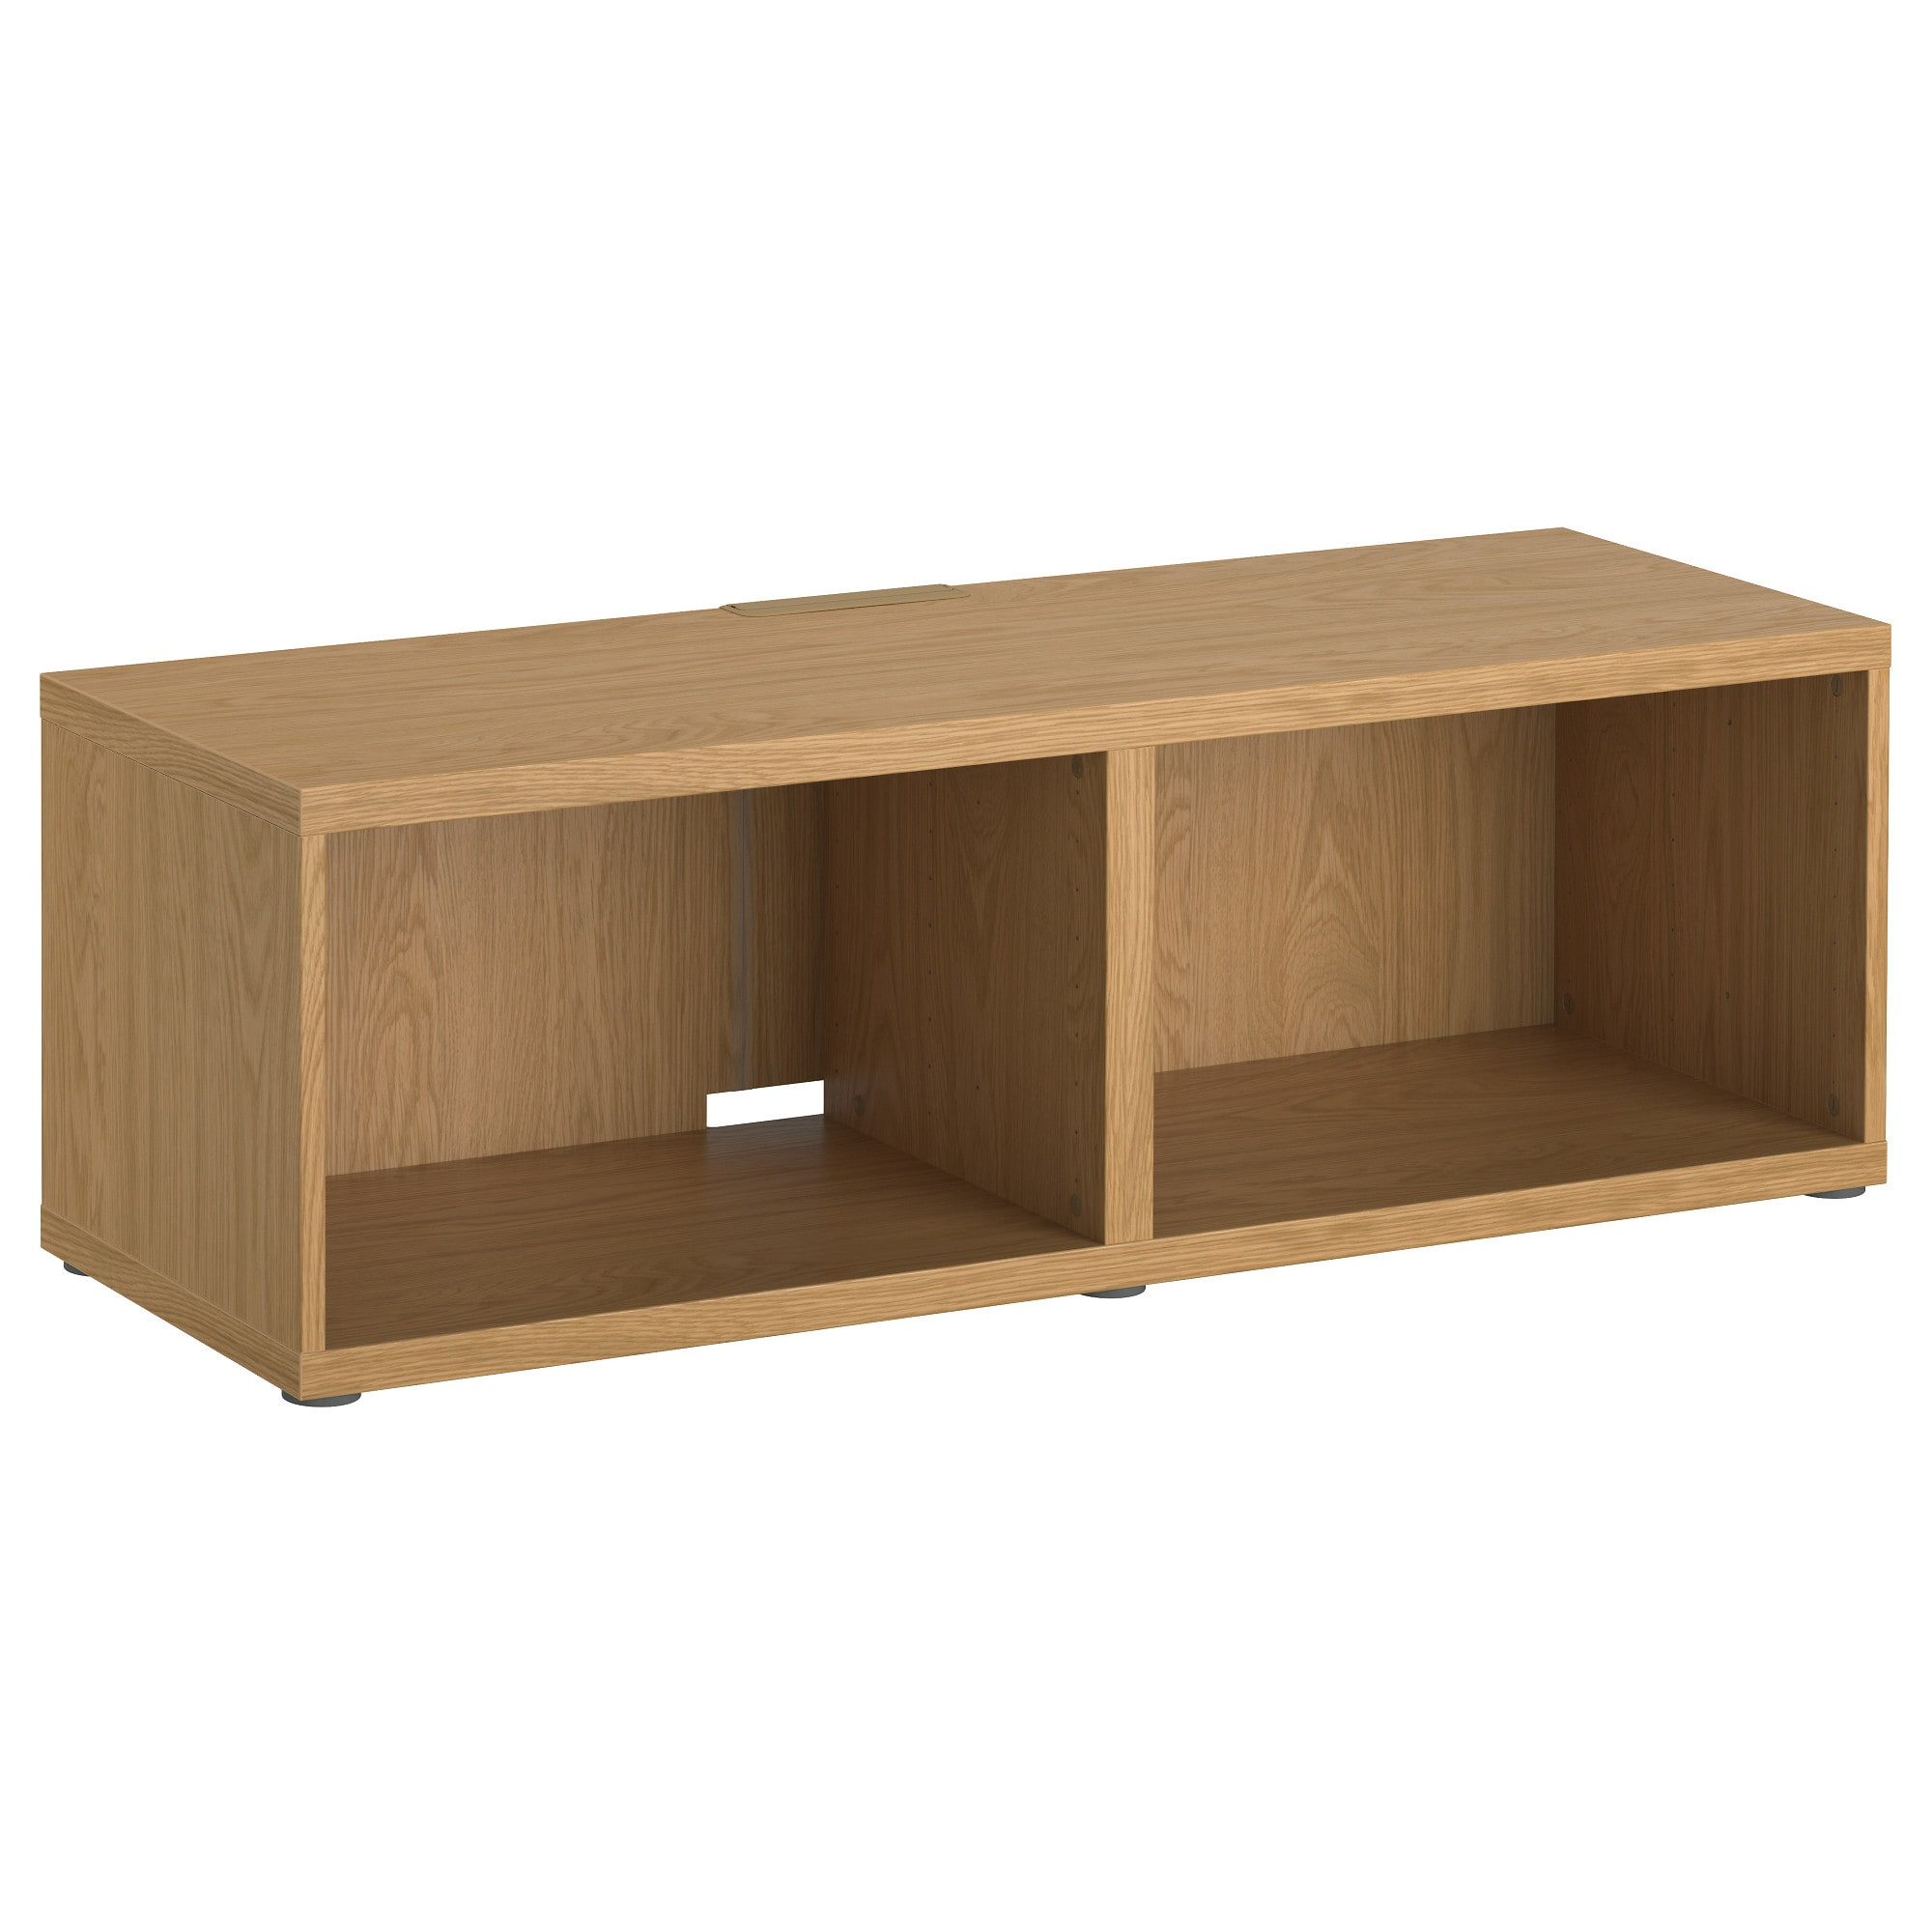 Ikea Regarding Pine Tv Cabinets (View 8 of 20)